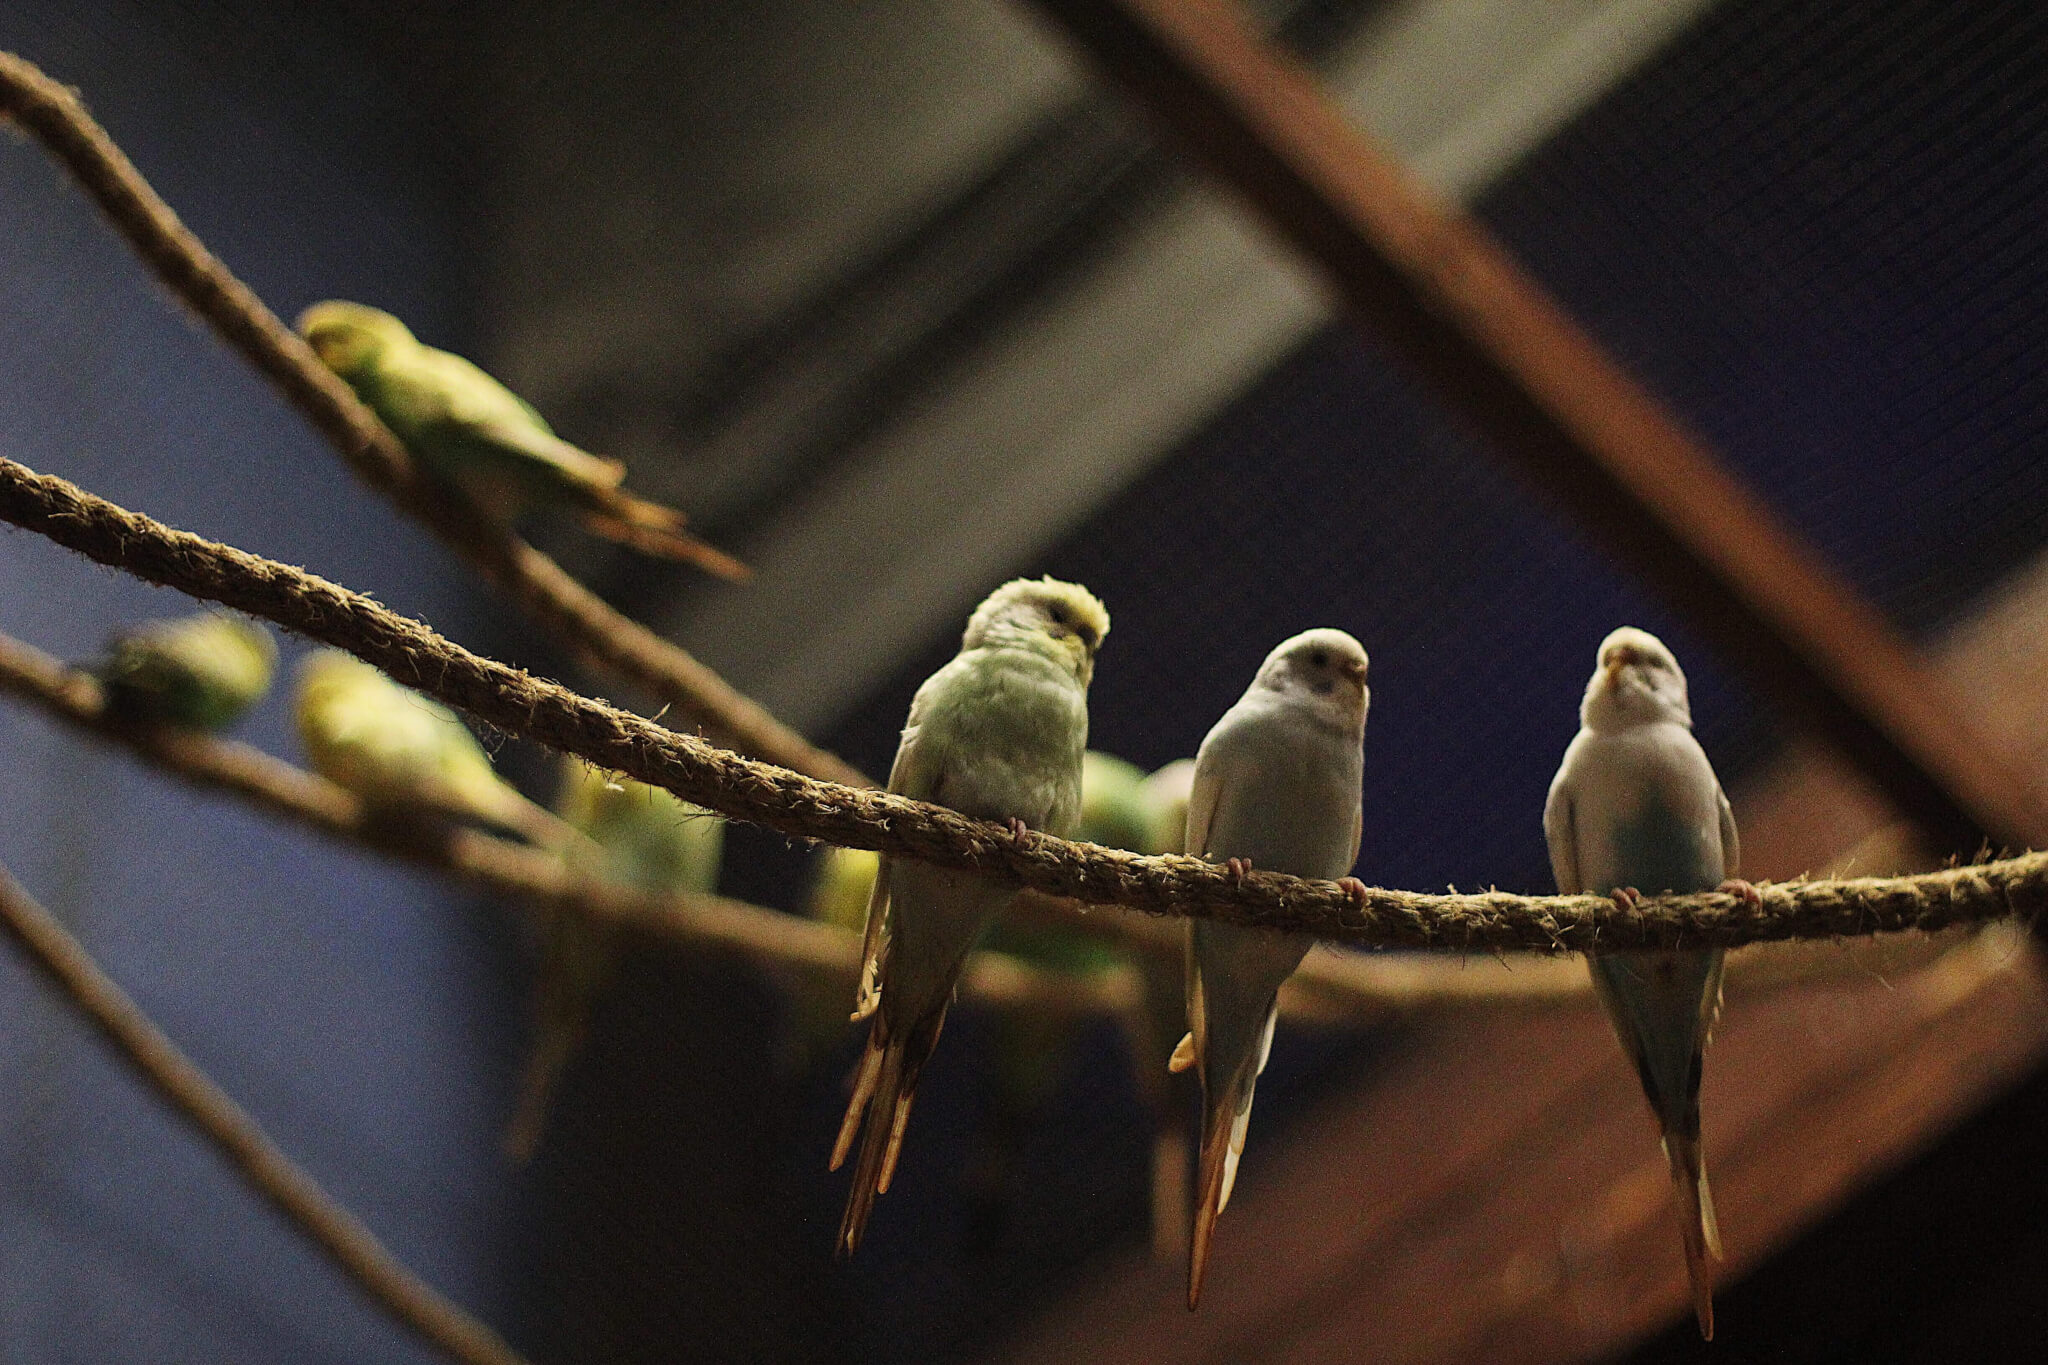 Experience wildlife birds indoors at the East Idaho Aquarium